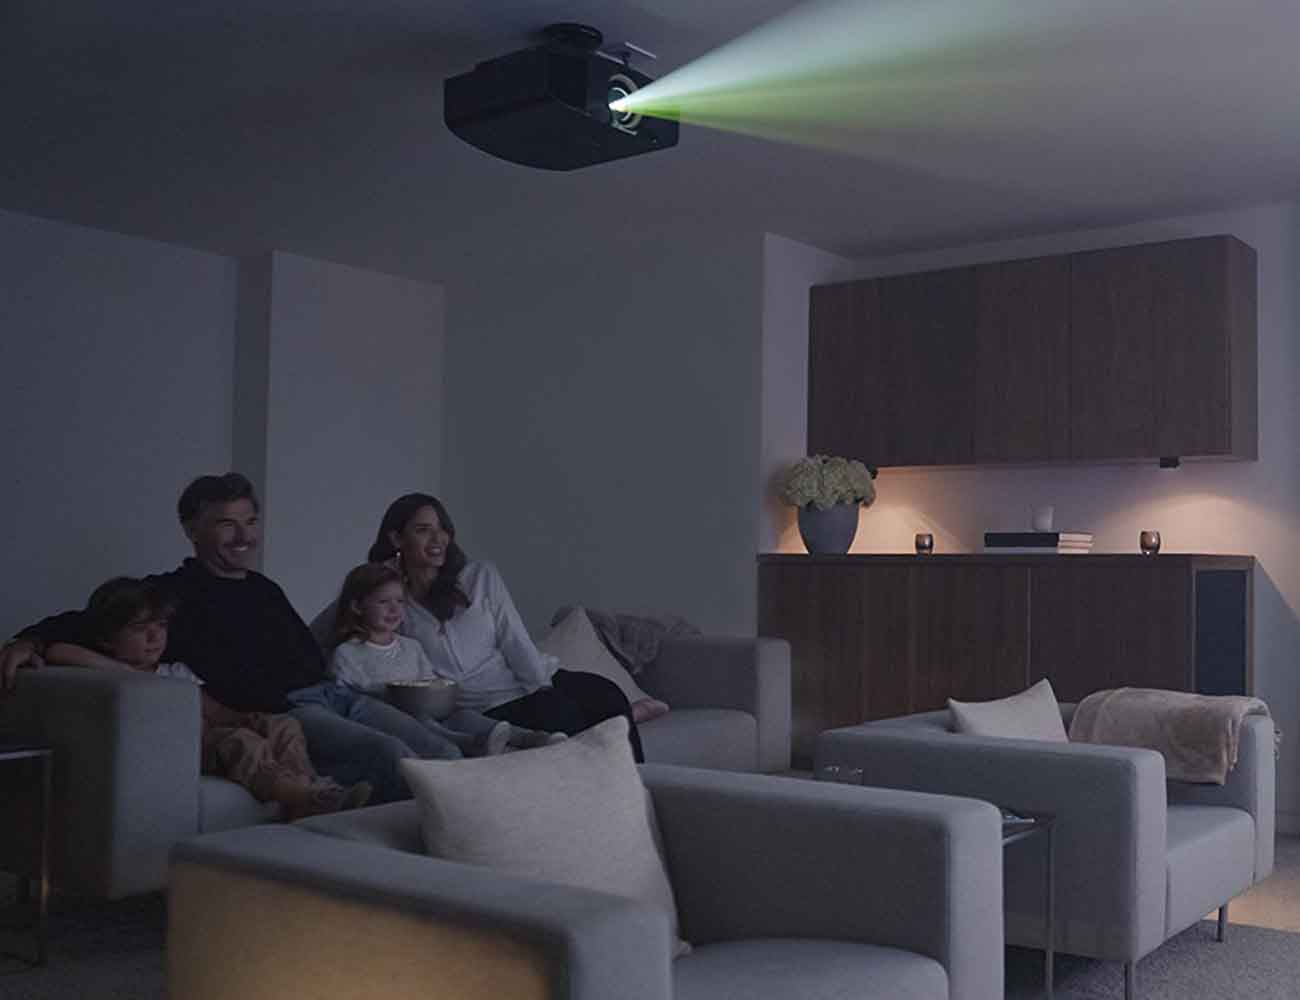 Sony 4K 3D SXRD Home Theater/Gaming Projector